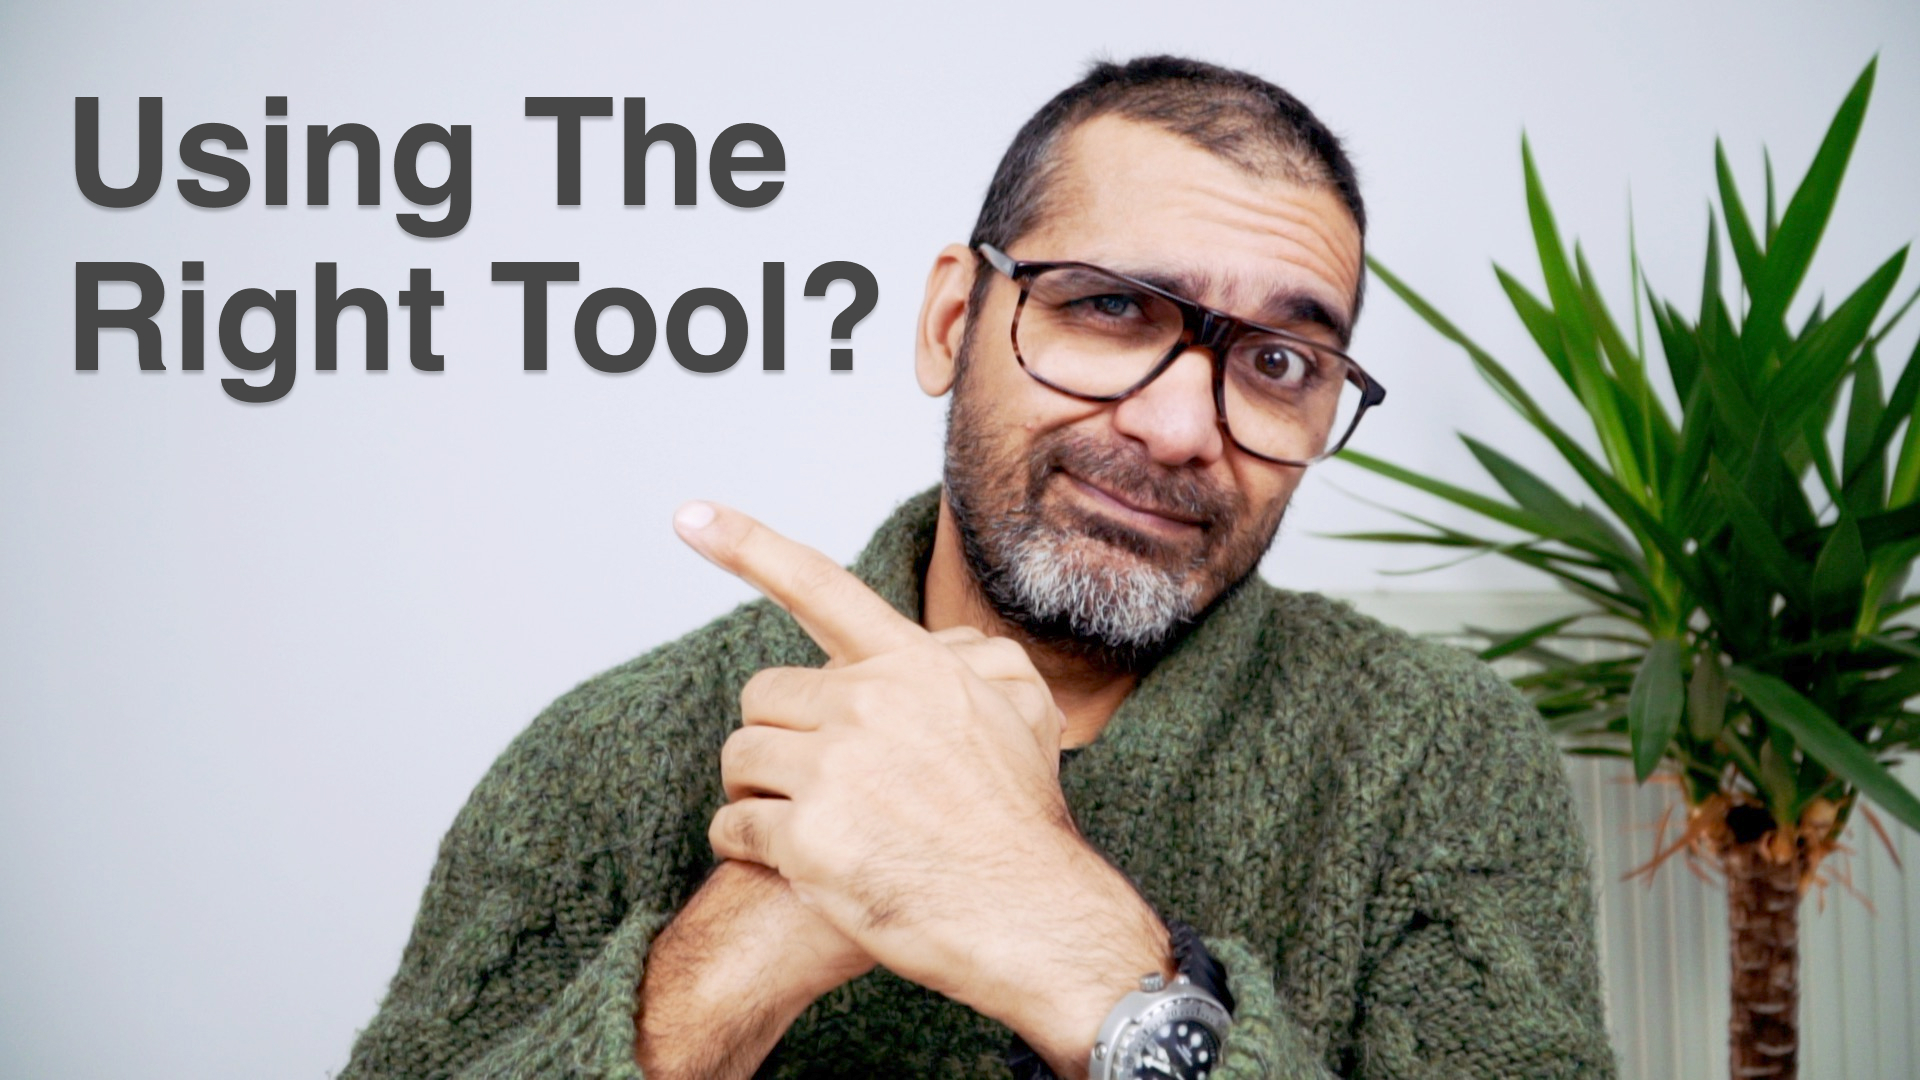 Are you using the right tool?